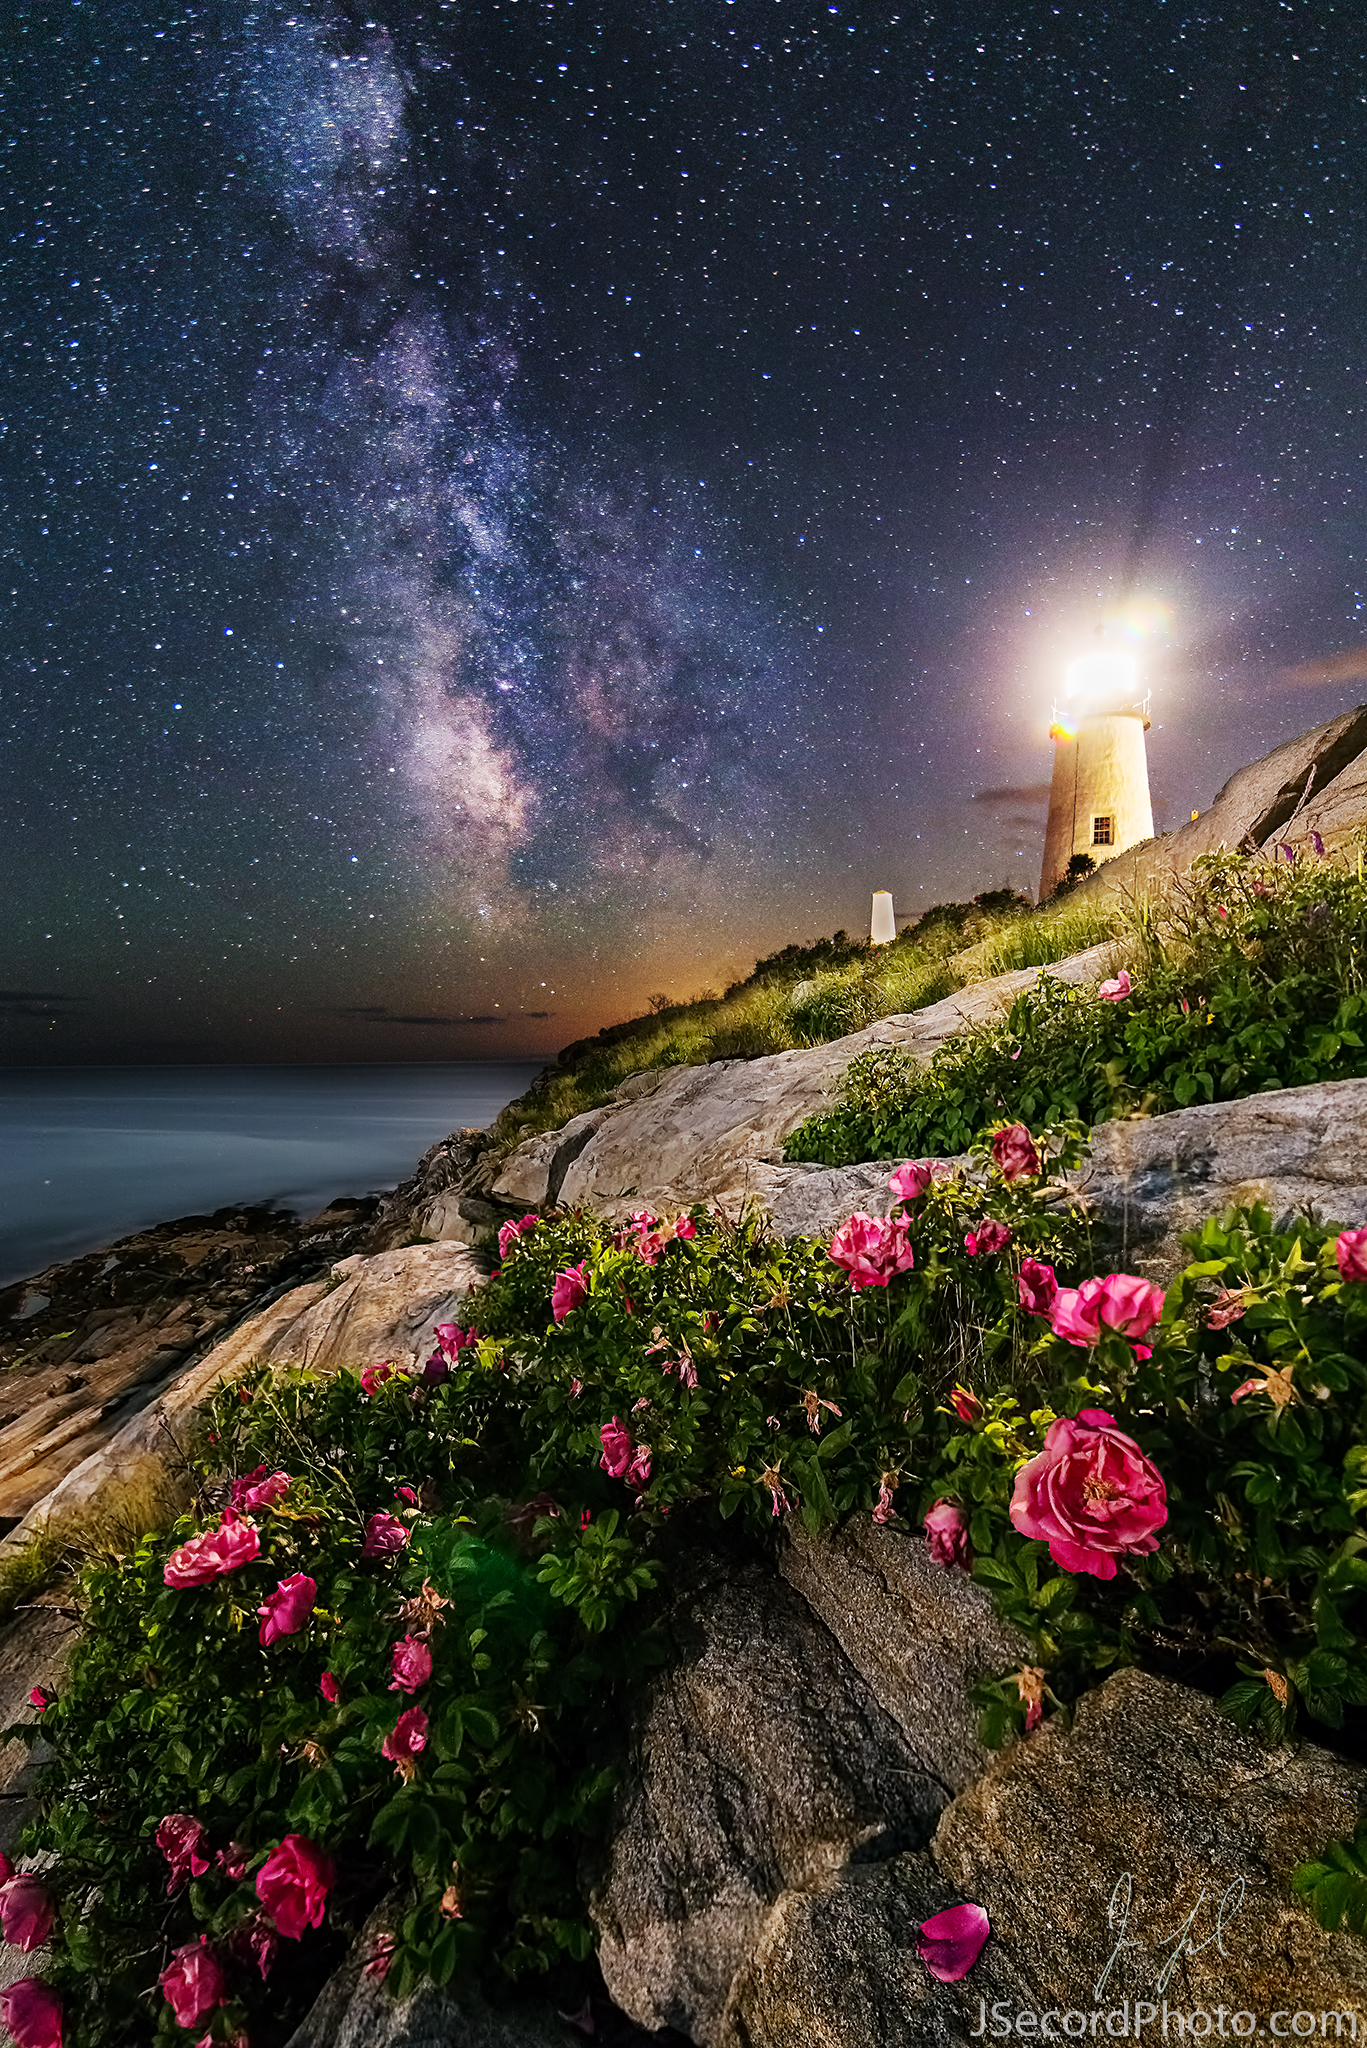 The Lighthouse and the Flowers